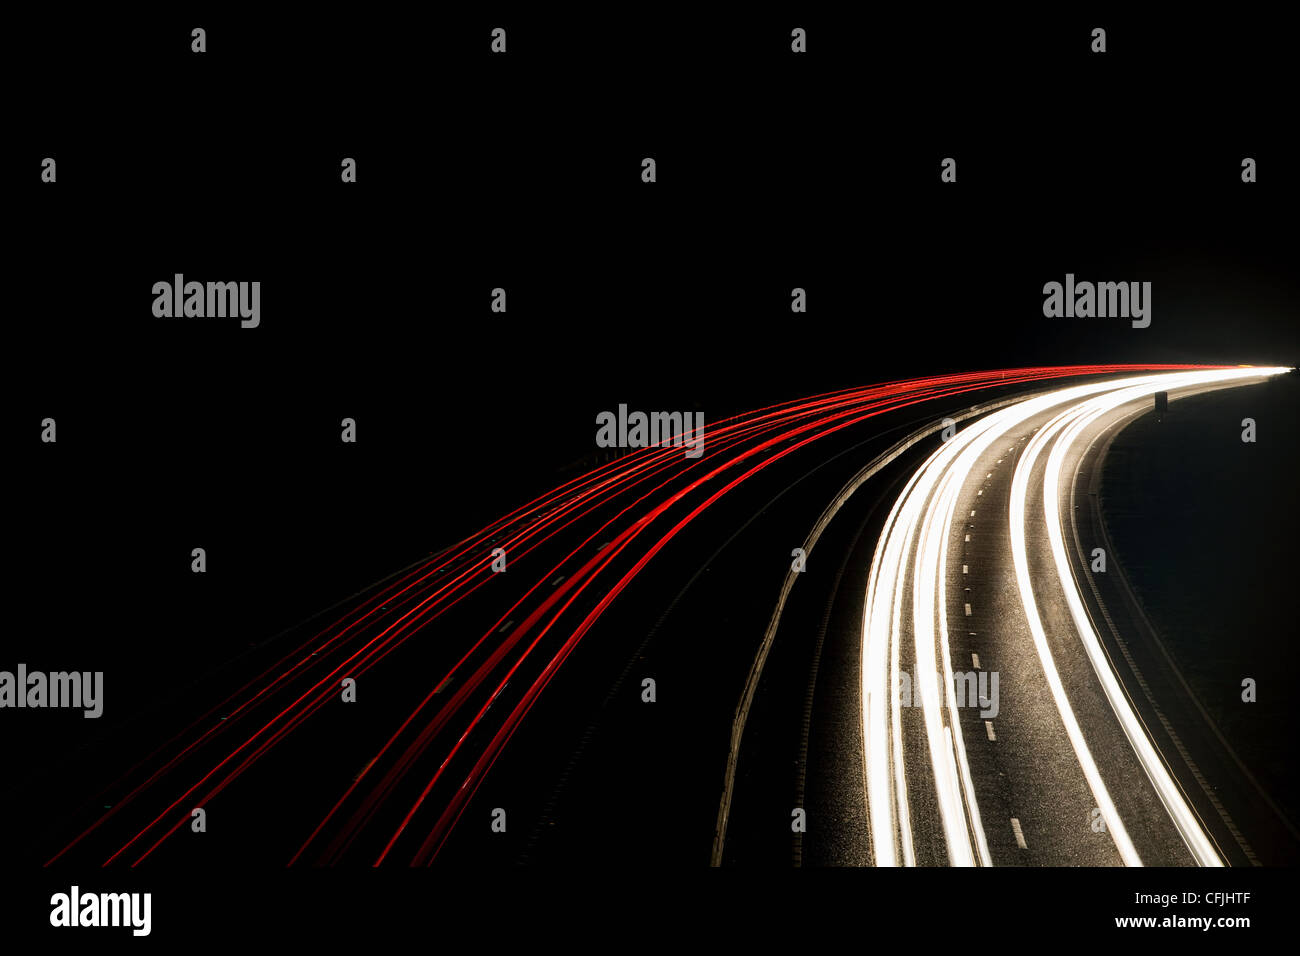 Headlights and tail lights on motorway - Stock Image